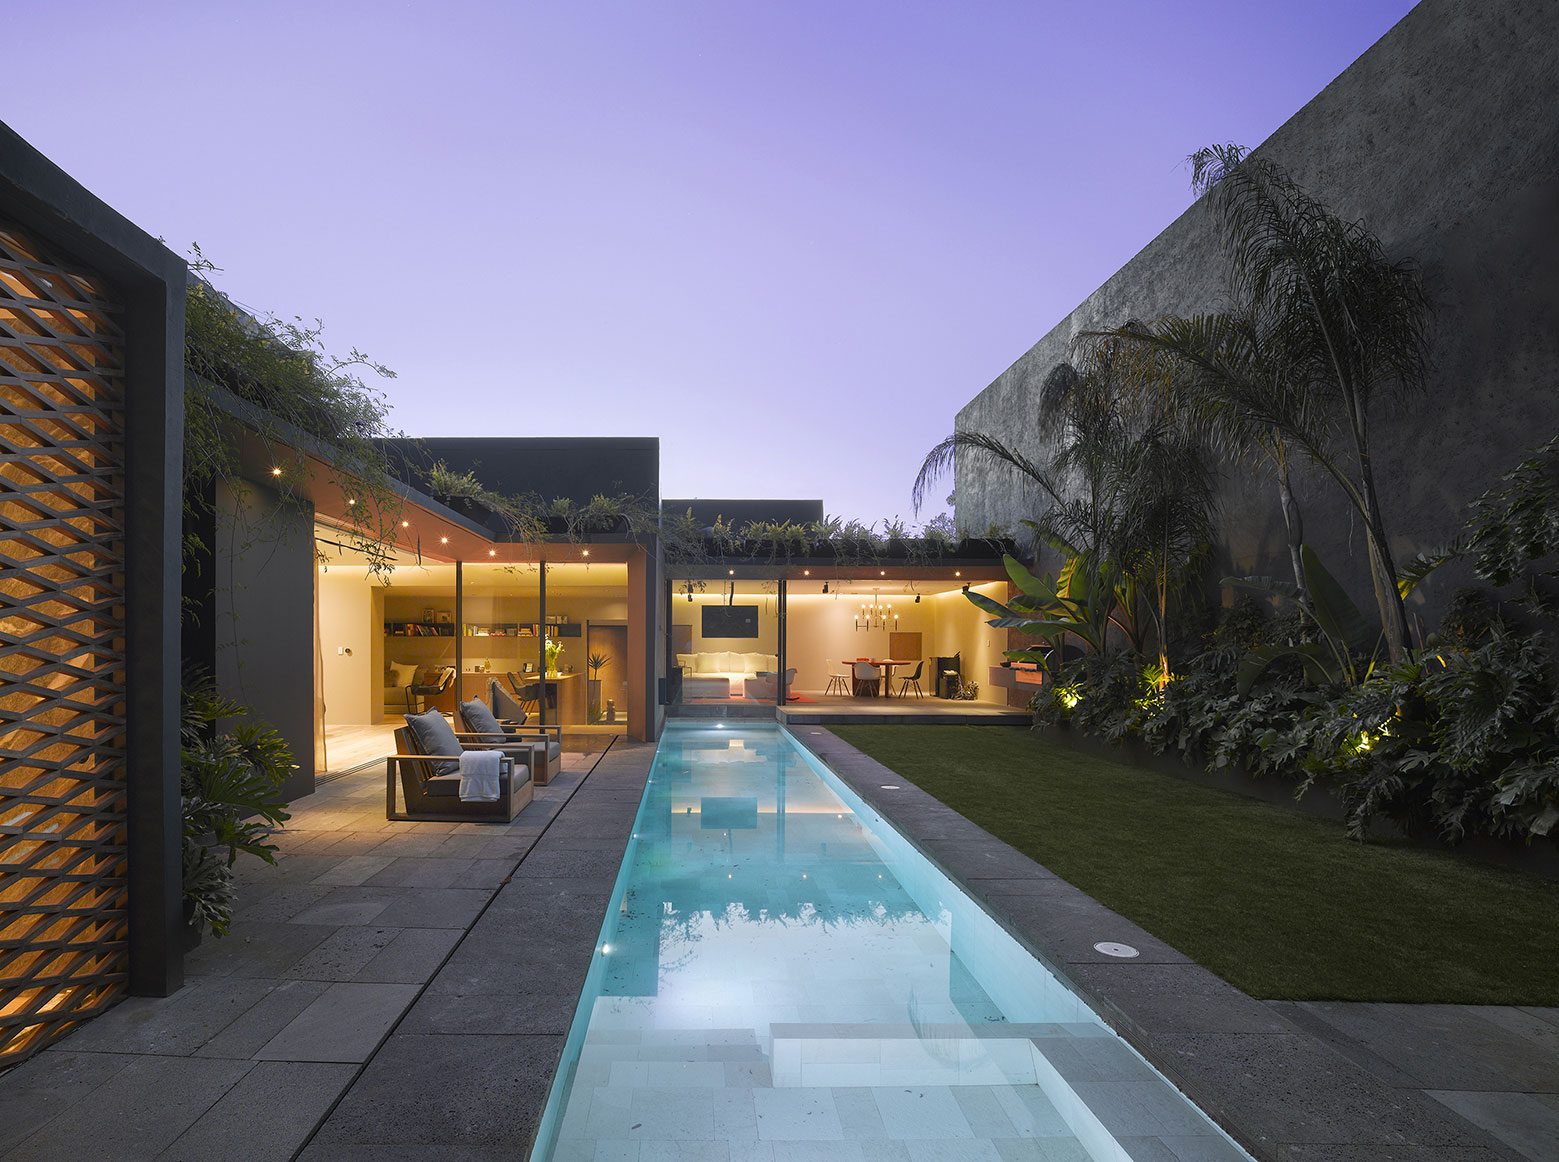 Modern Barrancas House in Mexico City by EZEQUIELFARCA architecture and design-21